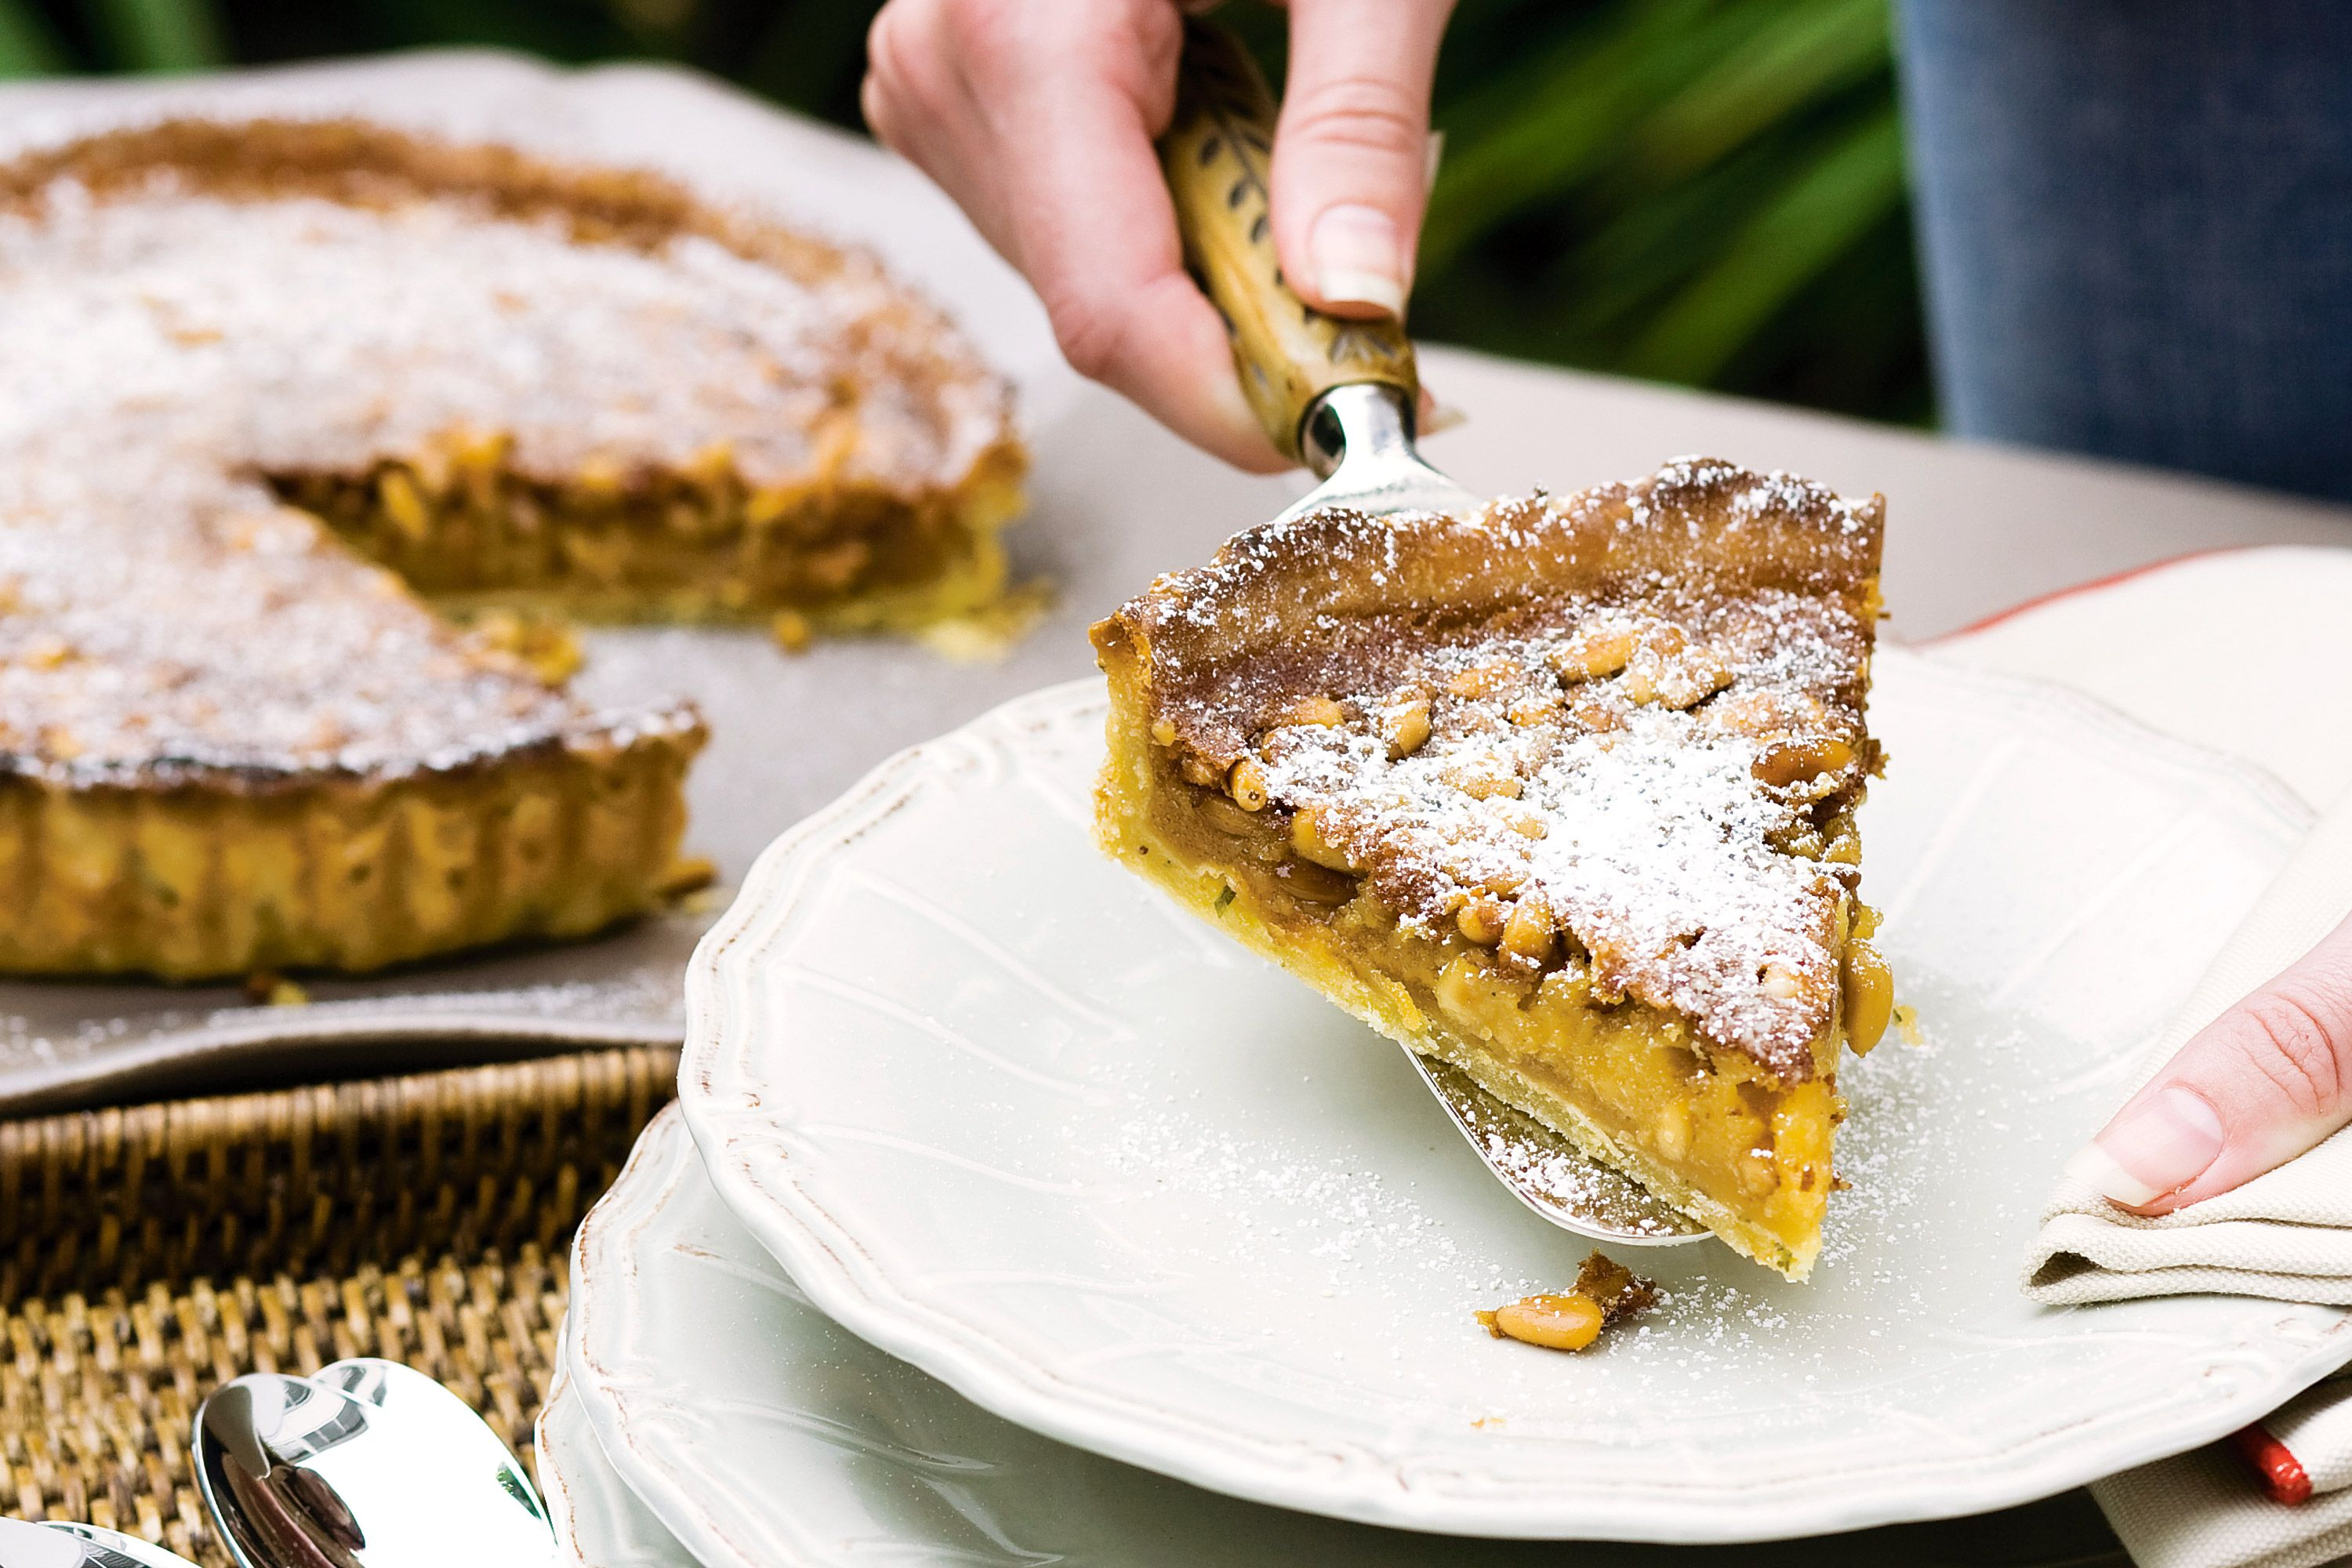 Surprise Mum with the secret ingredient in this sweet, nutty tart - the fresh rosemary hidden in the handmade shortcrust pastry.